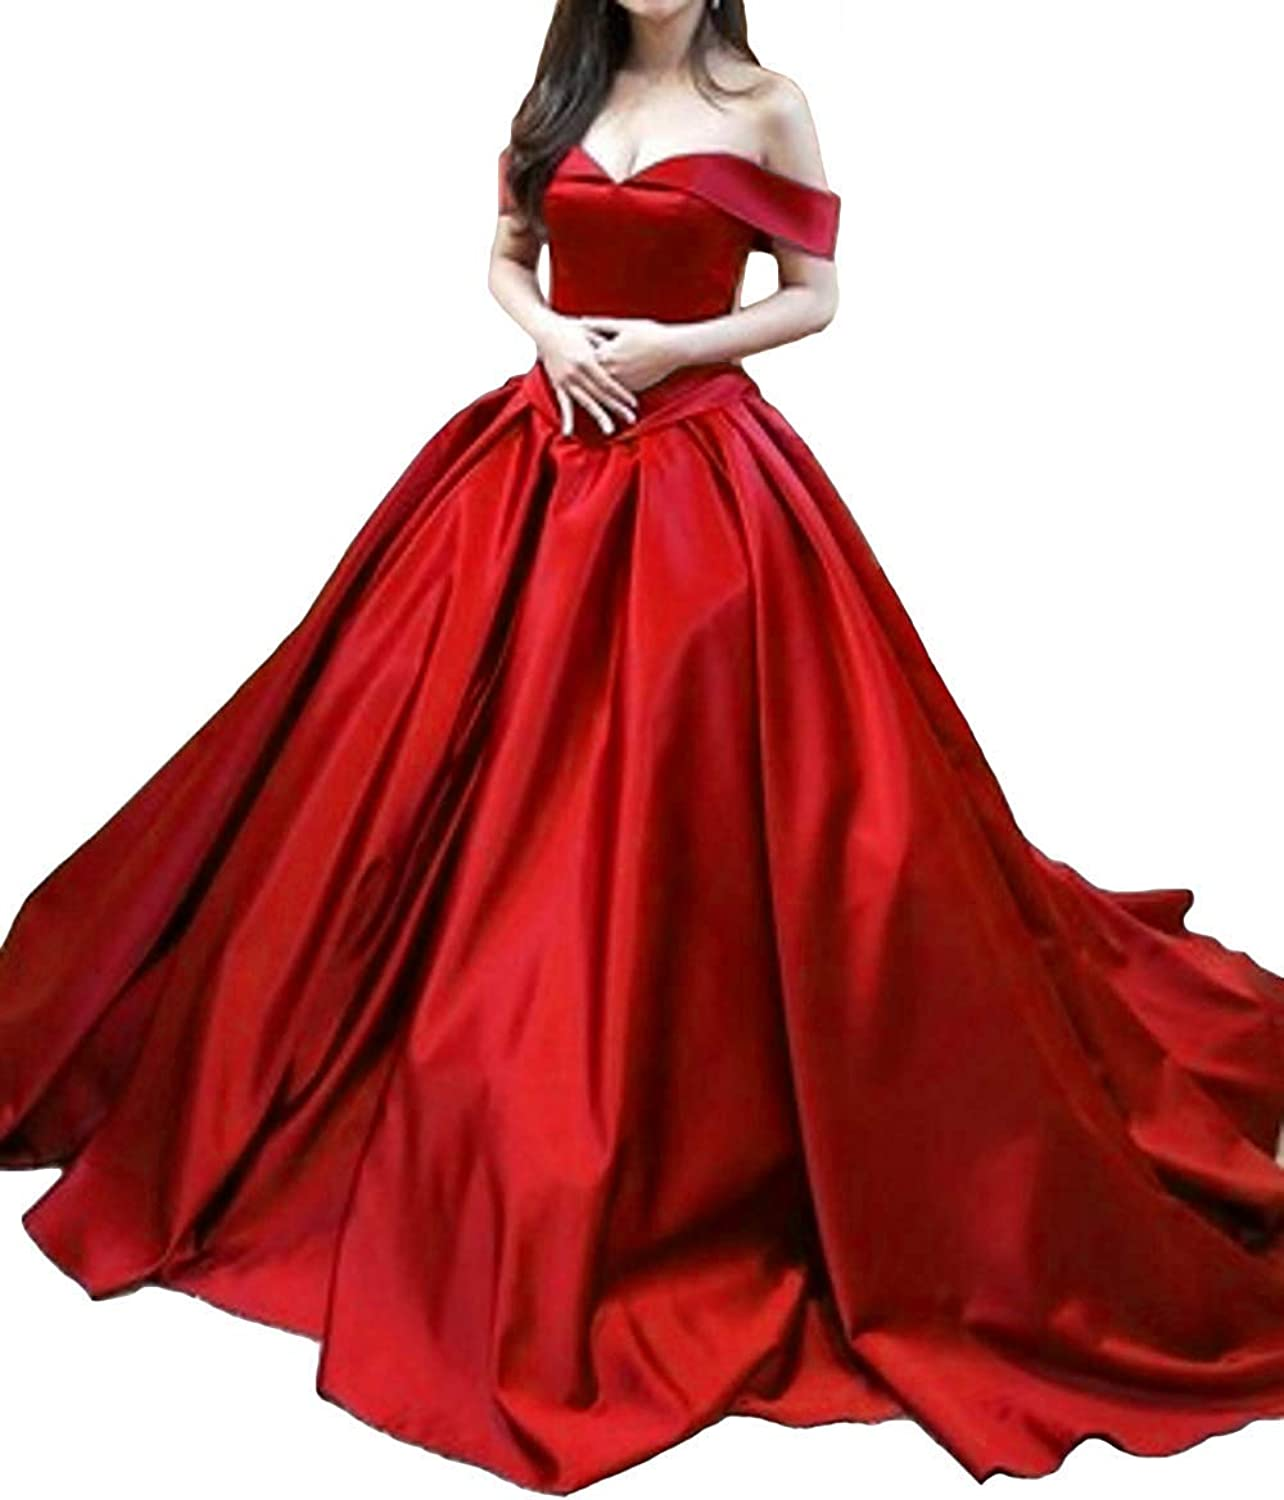 XKYU Women's Vintage Ball Gown Long Satin Prom Dresses ALine Off The Shoulder Evening Dresses with Pockets